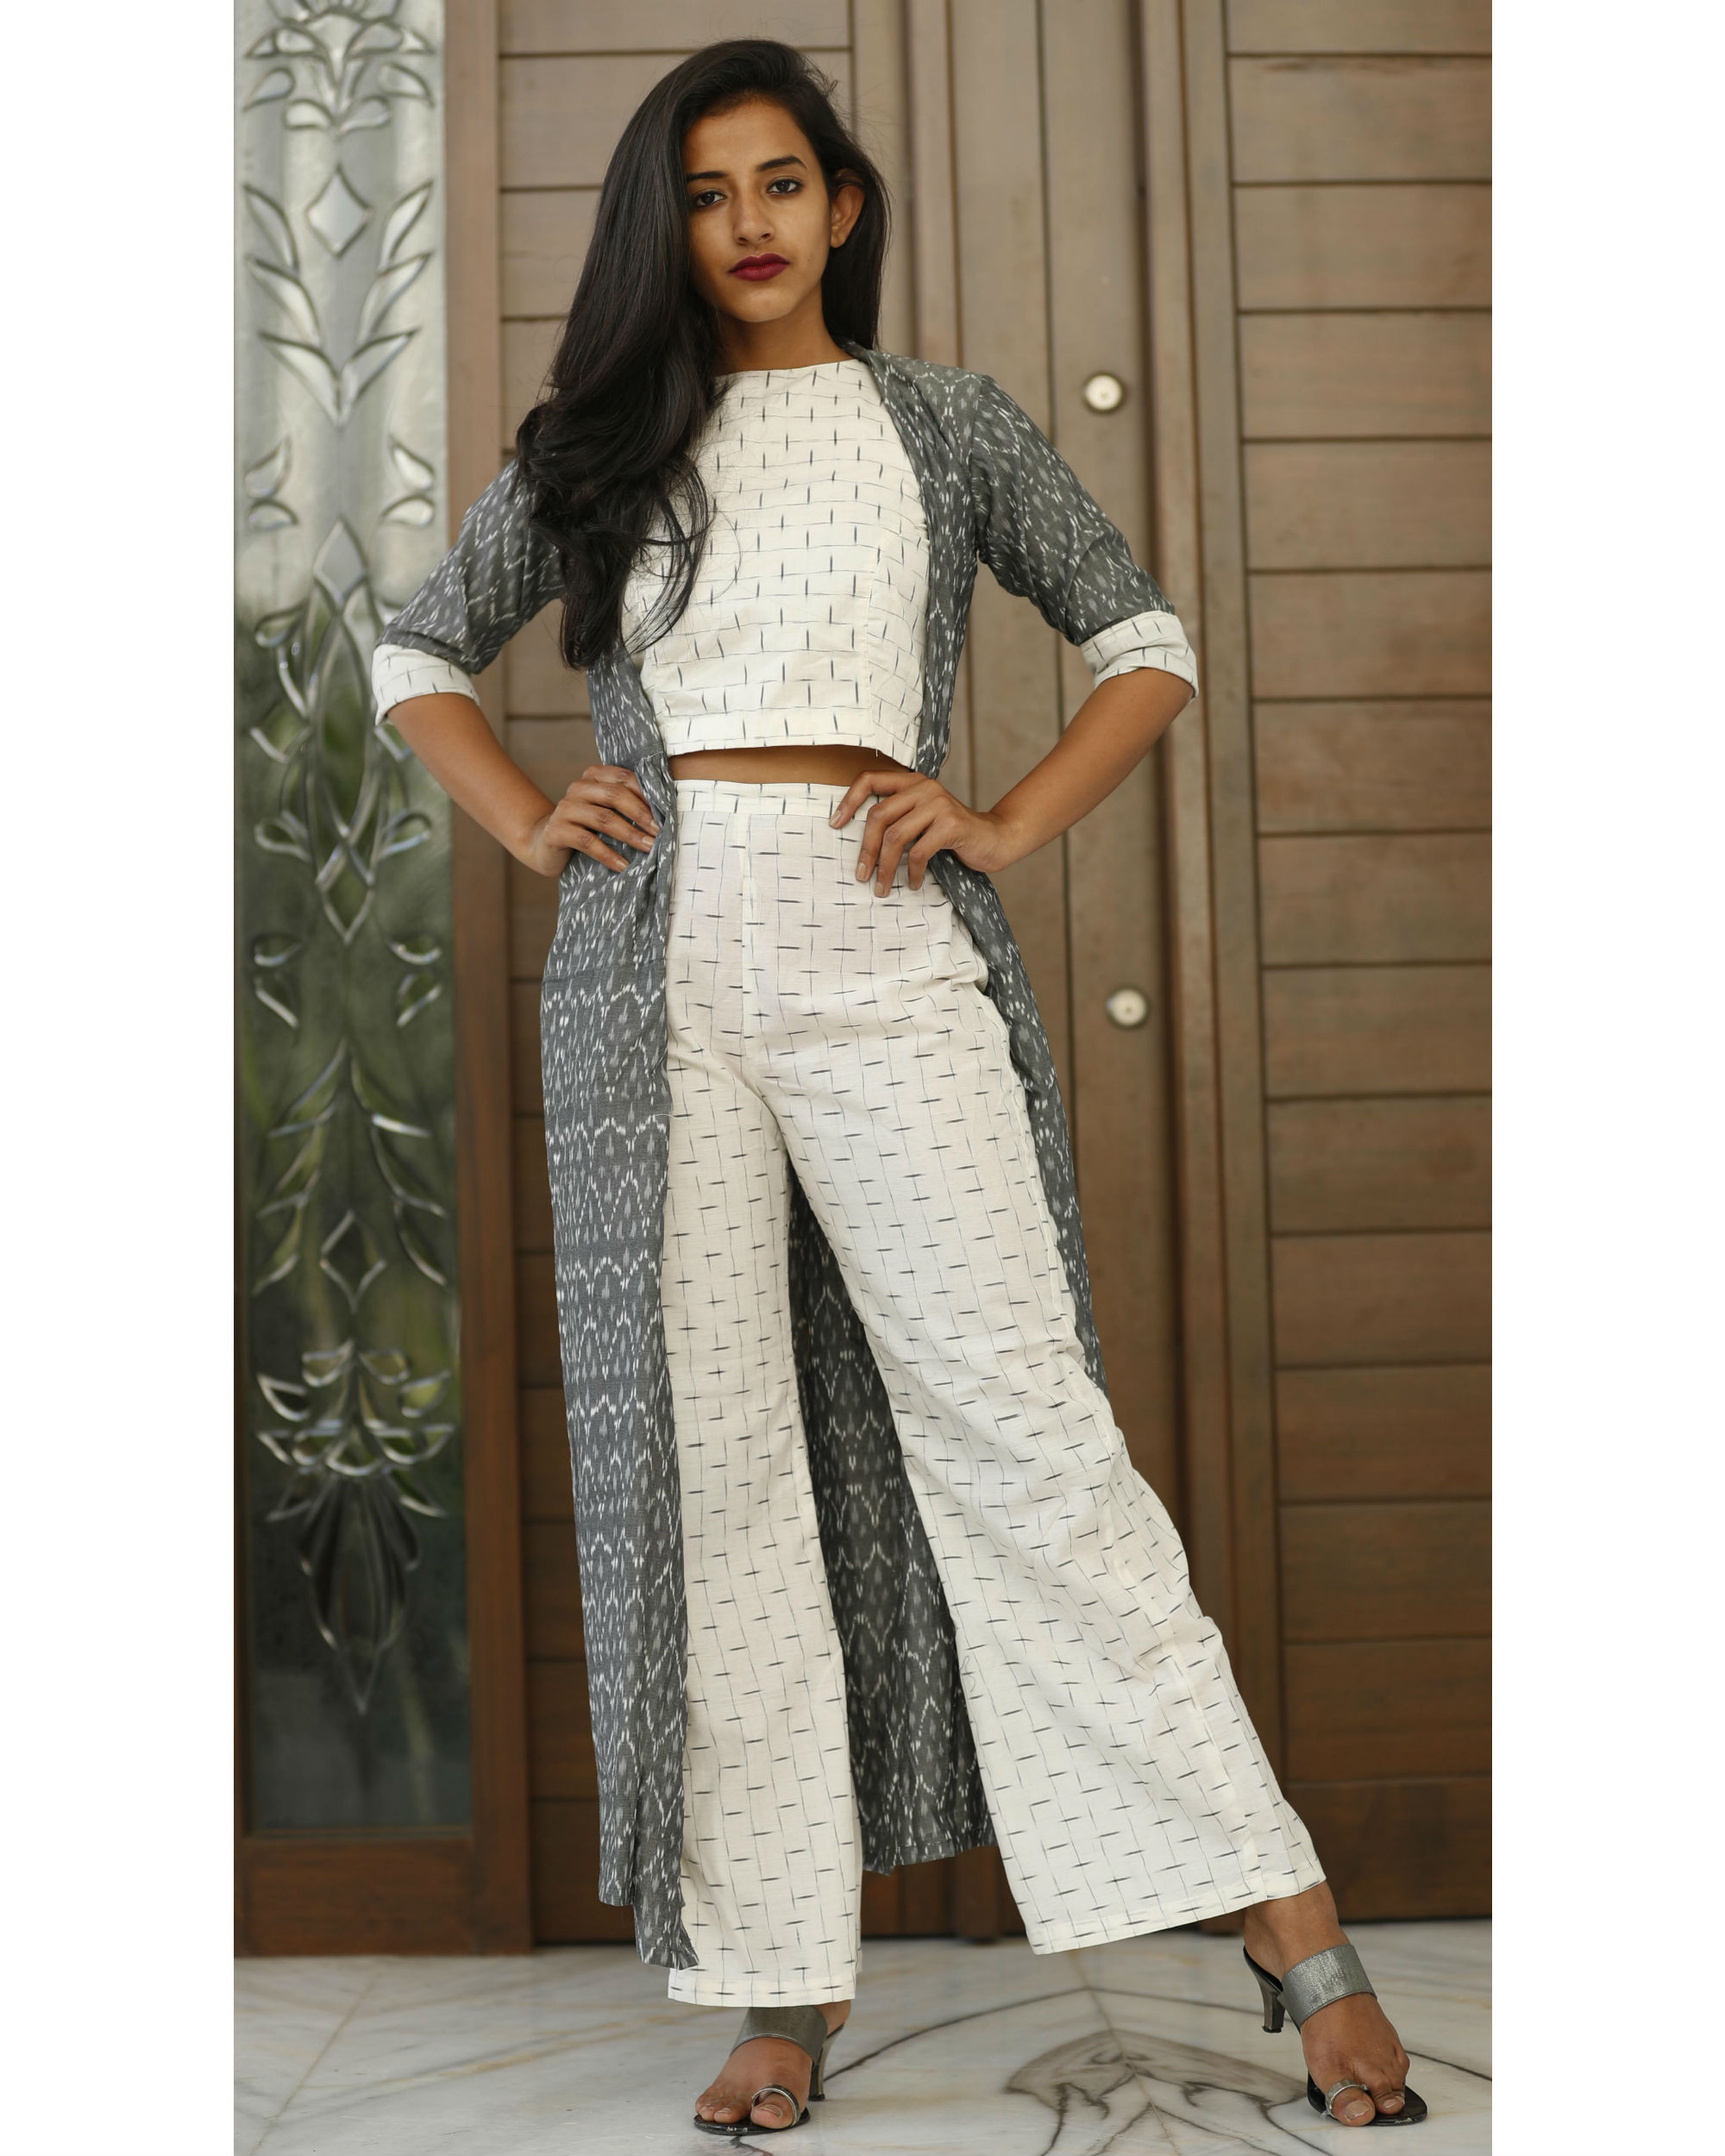 White ikat crop top with ash grey jacket